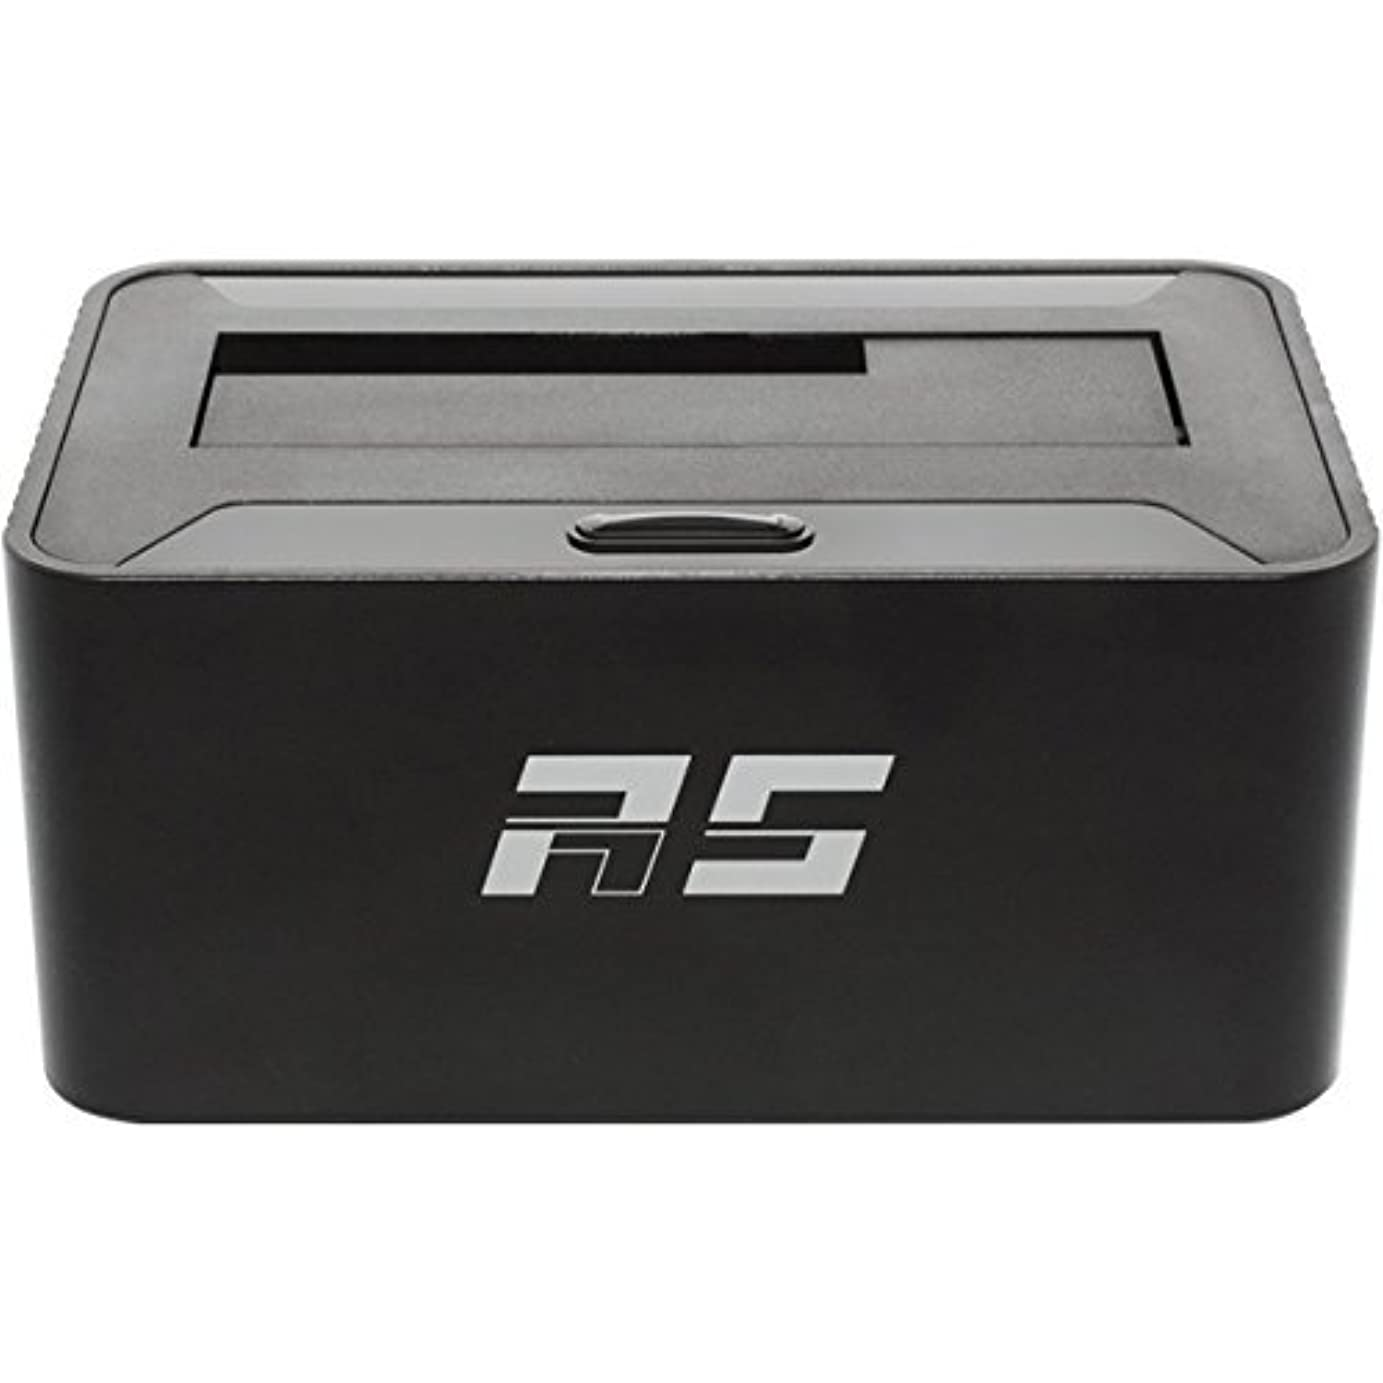 インドレオナルドダ純粋にHighPoint 5Gbps USB3.0 to SSD / SATA Hard Drive Docking Station (RocketStor 5411A) [並行輸入品]